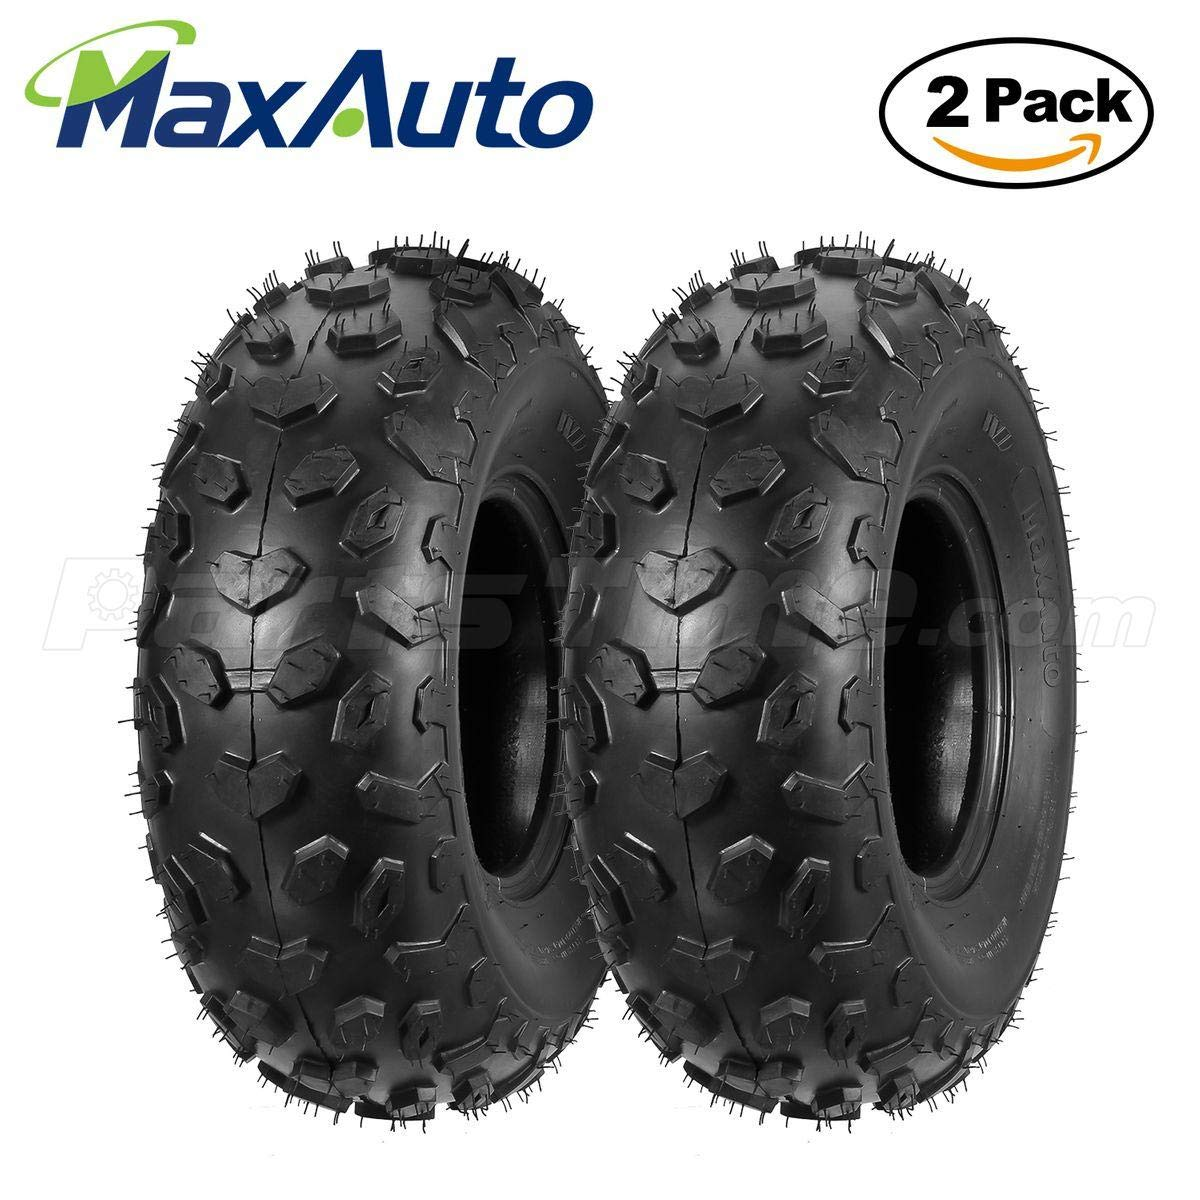 Set of 2 MaxAuto ATV Tires 19x7-8 19x7x8 Mini Bike Tires 4PR by MaxAuto